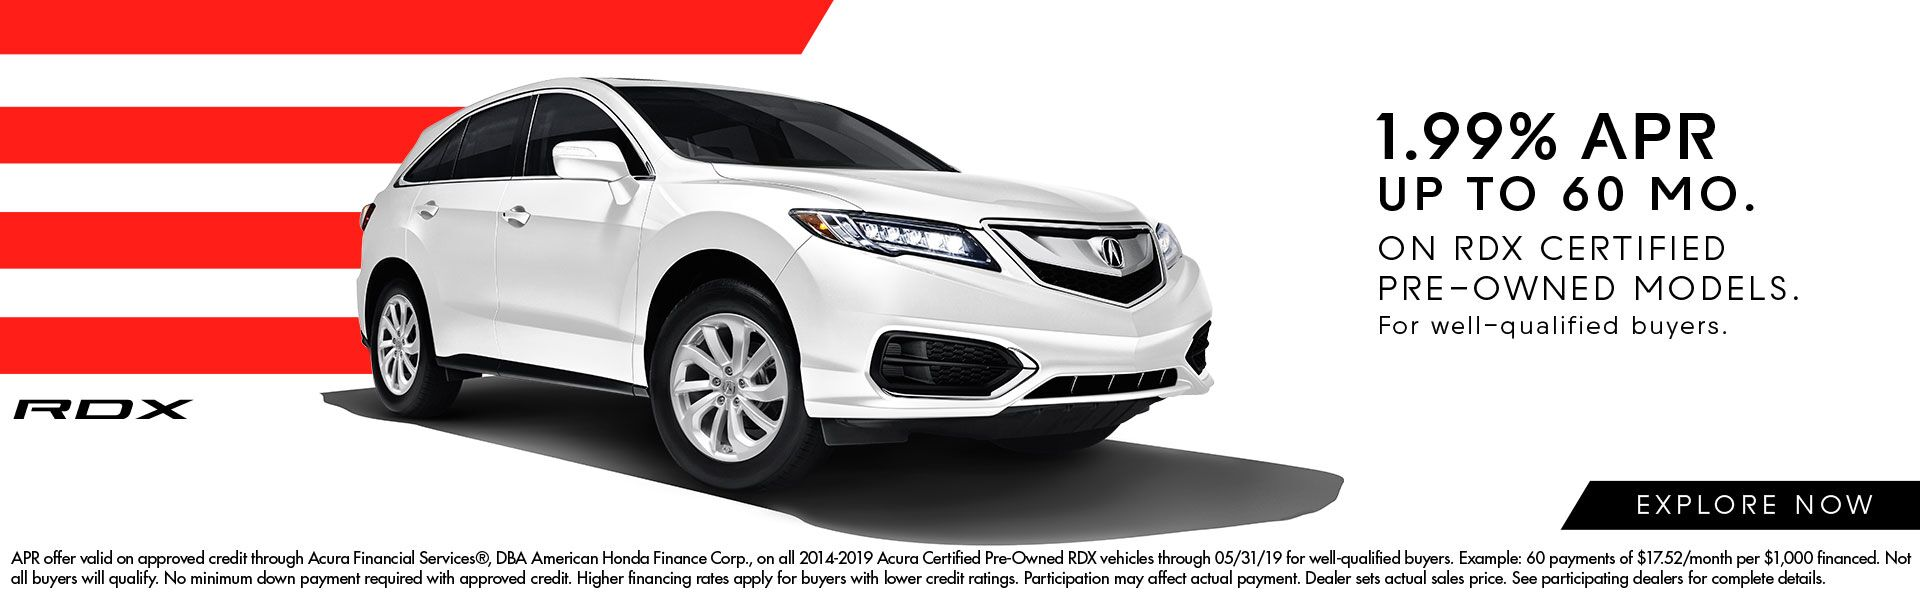 1.99% APR Incentives on Certified RDX at Acura of Augusta